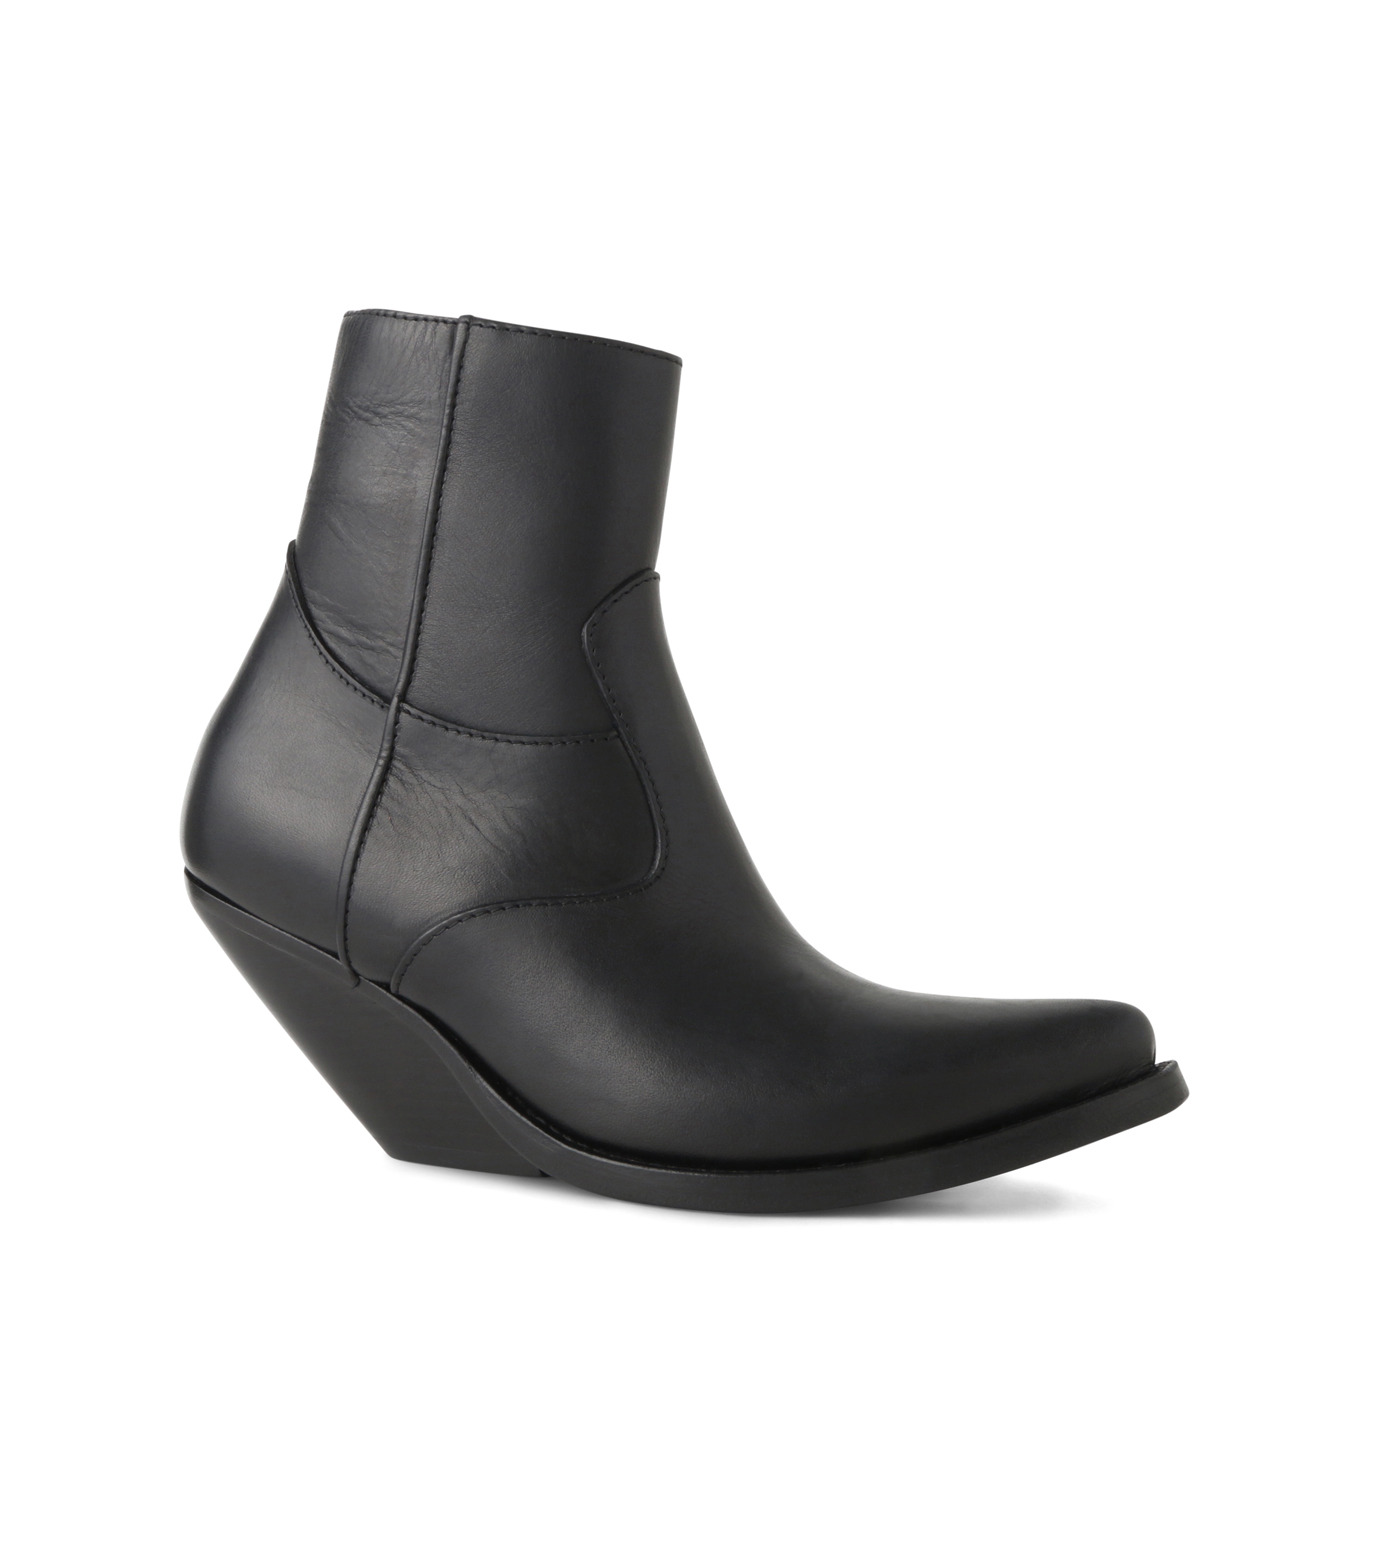 VETEMENTS(ヴェトモン)のCowboy Ankle Boots-BLACK(ブーツ/boots)-15796-13 拡大詳細画像1